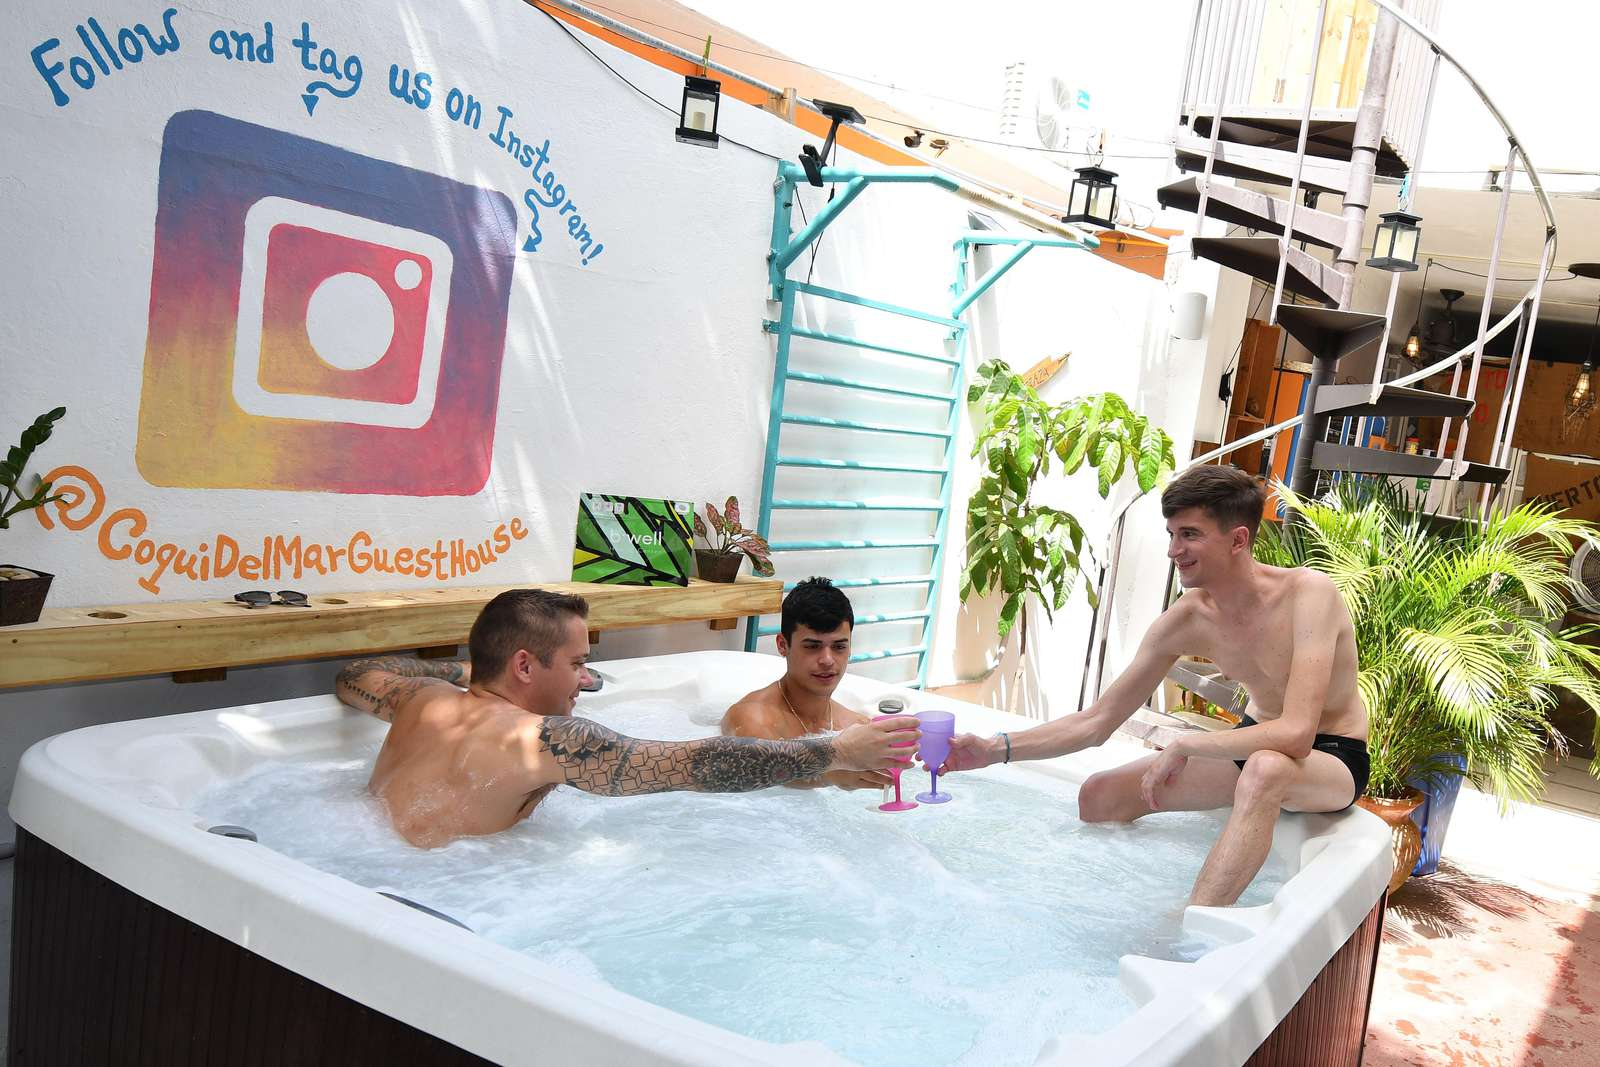 Meet new friends in the jacuzzi